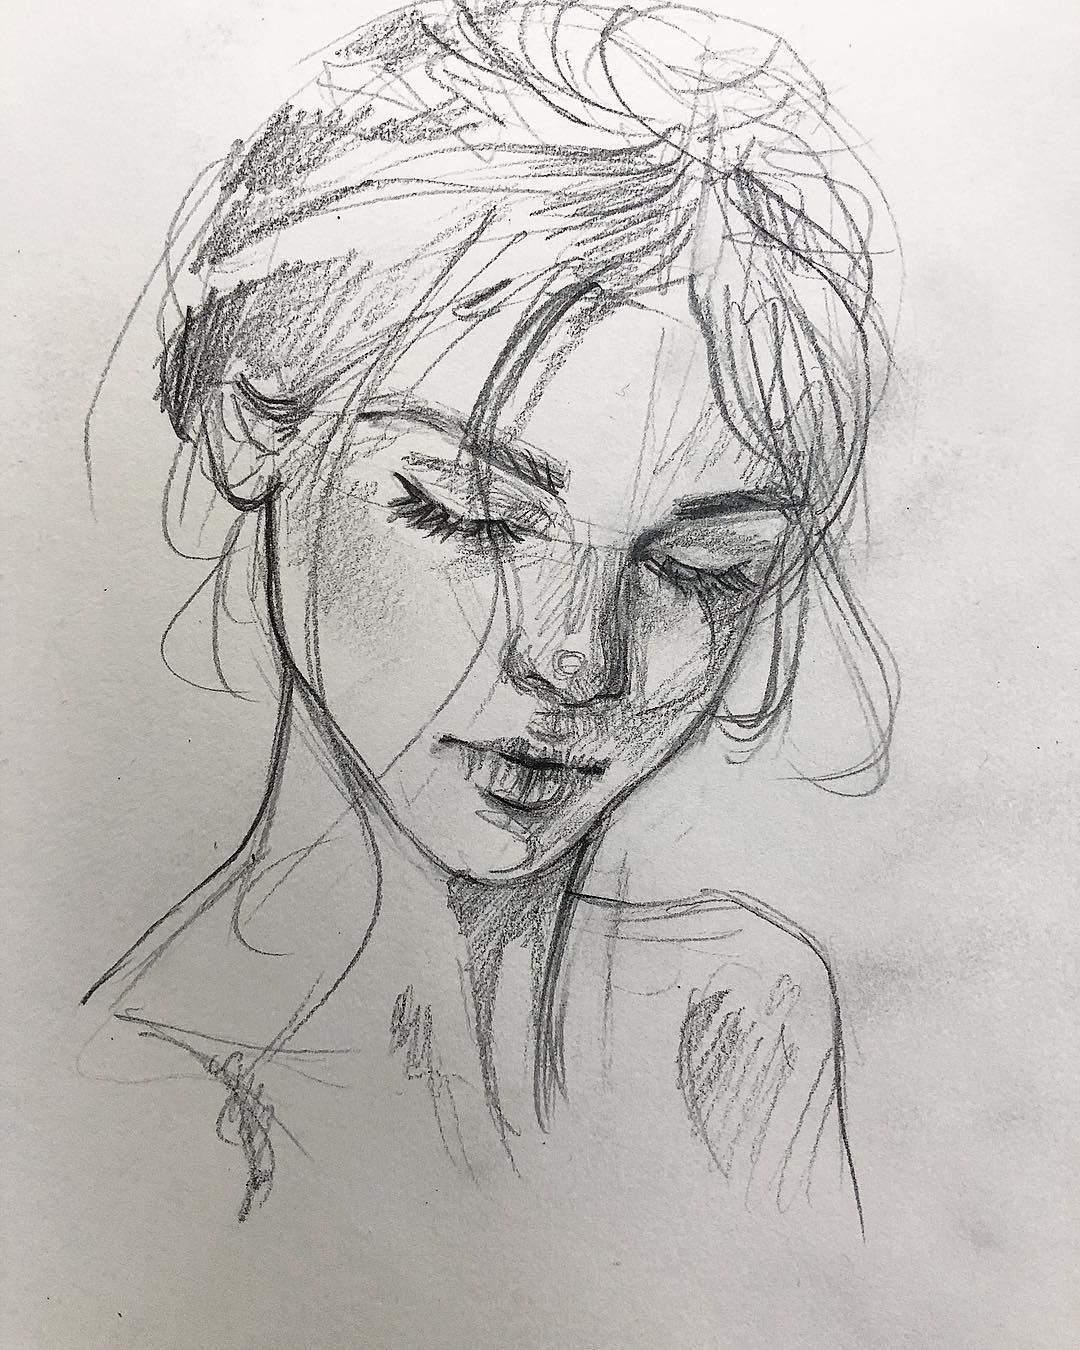 "A u d r e y A n n e on Instagram: ""Last sketch today � This 10 mnts doodle describes me so well. � . . . #sketch #pencil #practice #sketchdaily #dailysketch #sketching…"""